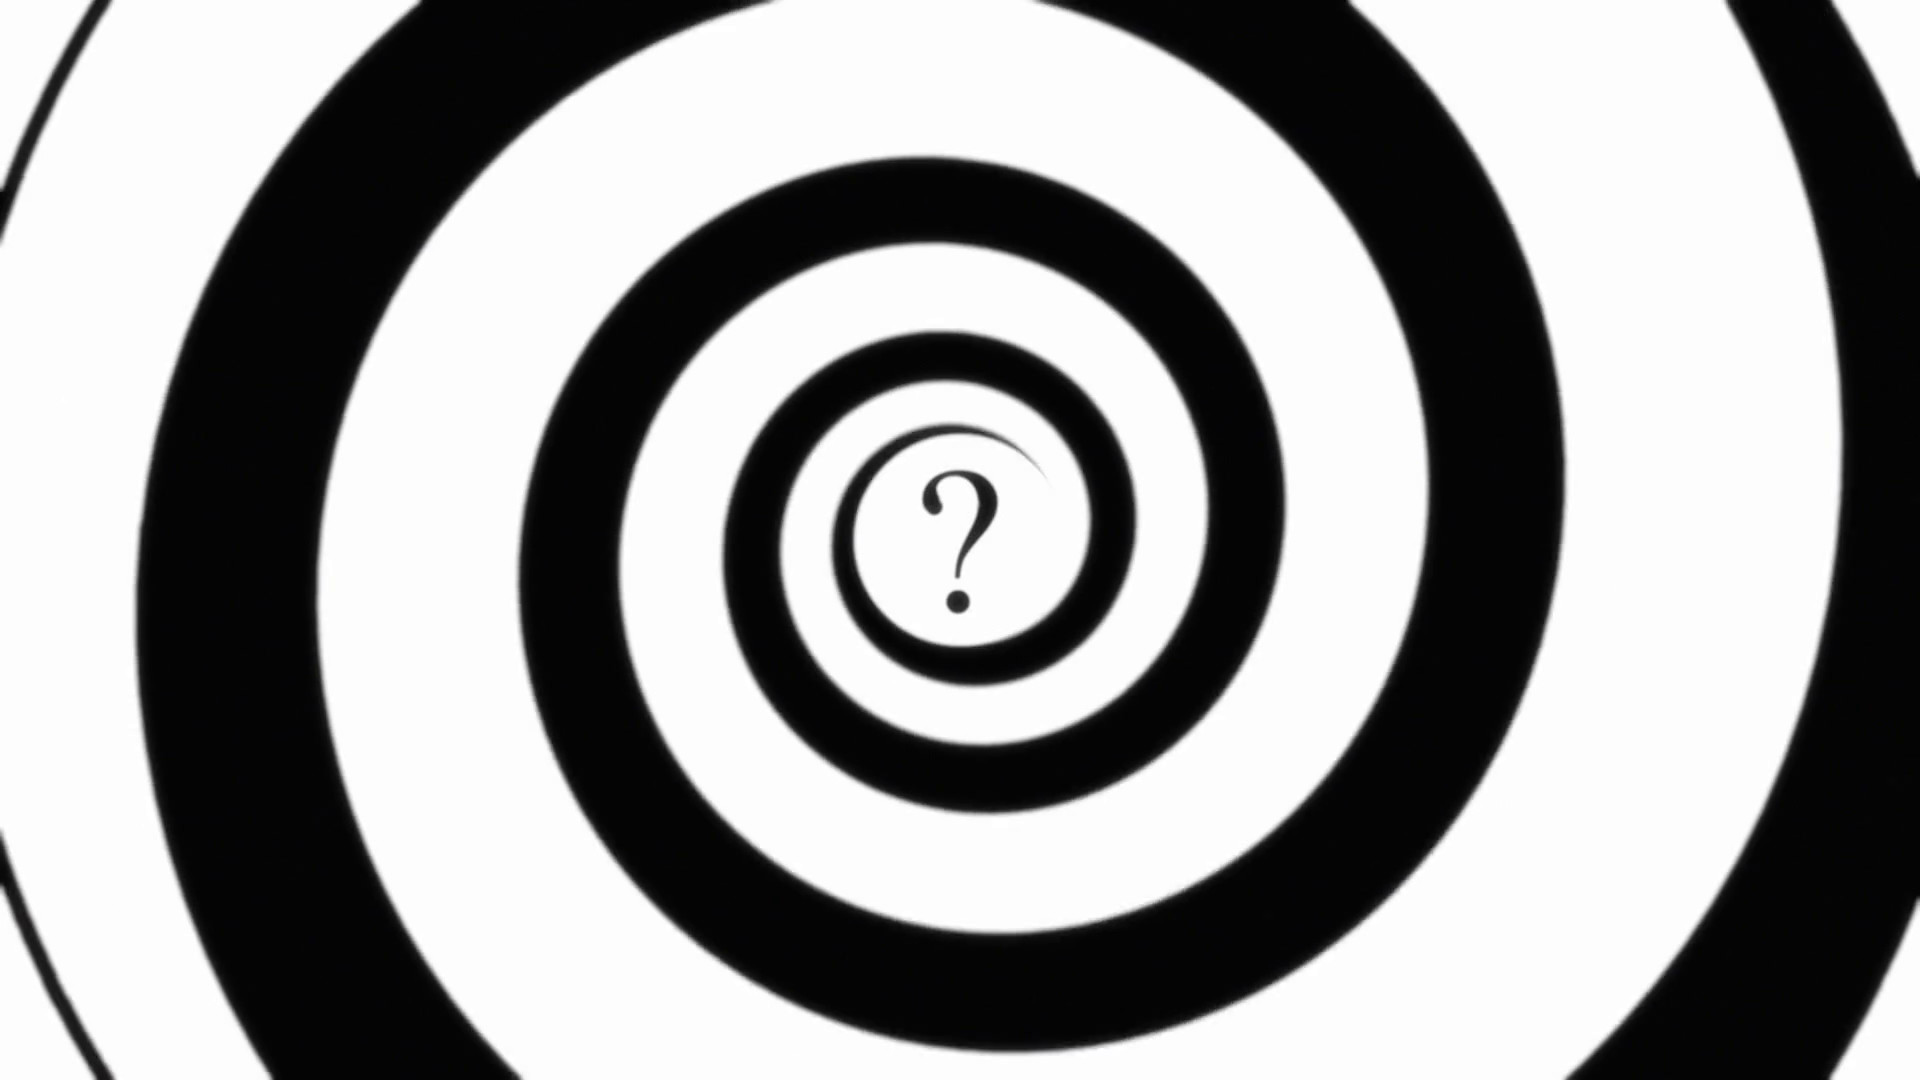 Hypnotic Spiral Modern Question Mark. An animated spiral (hypnotic), with a  question mark at the center. Black and white. Seamless loop.